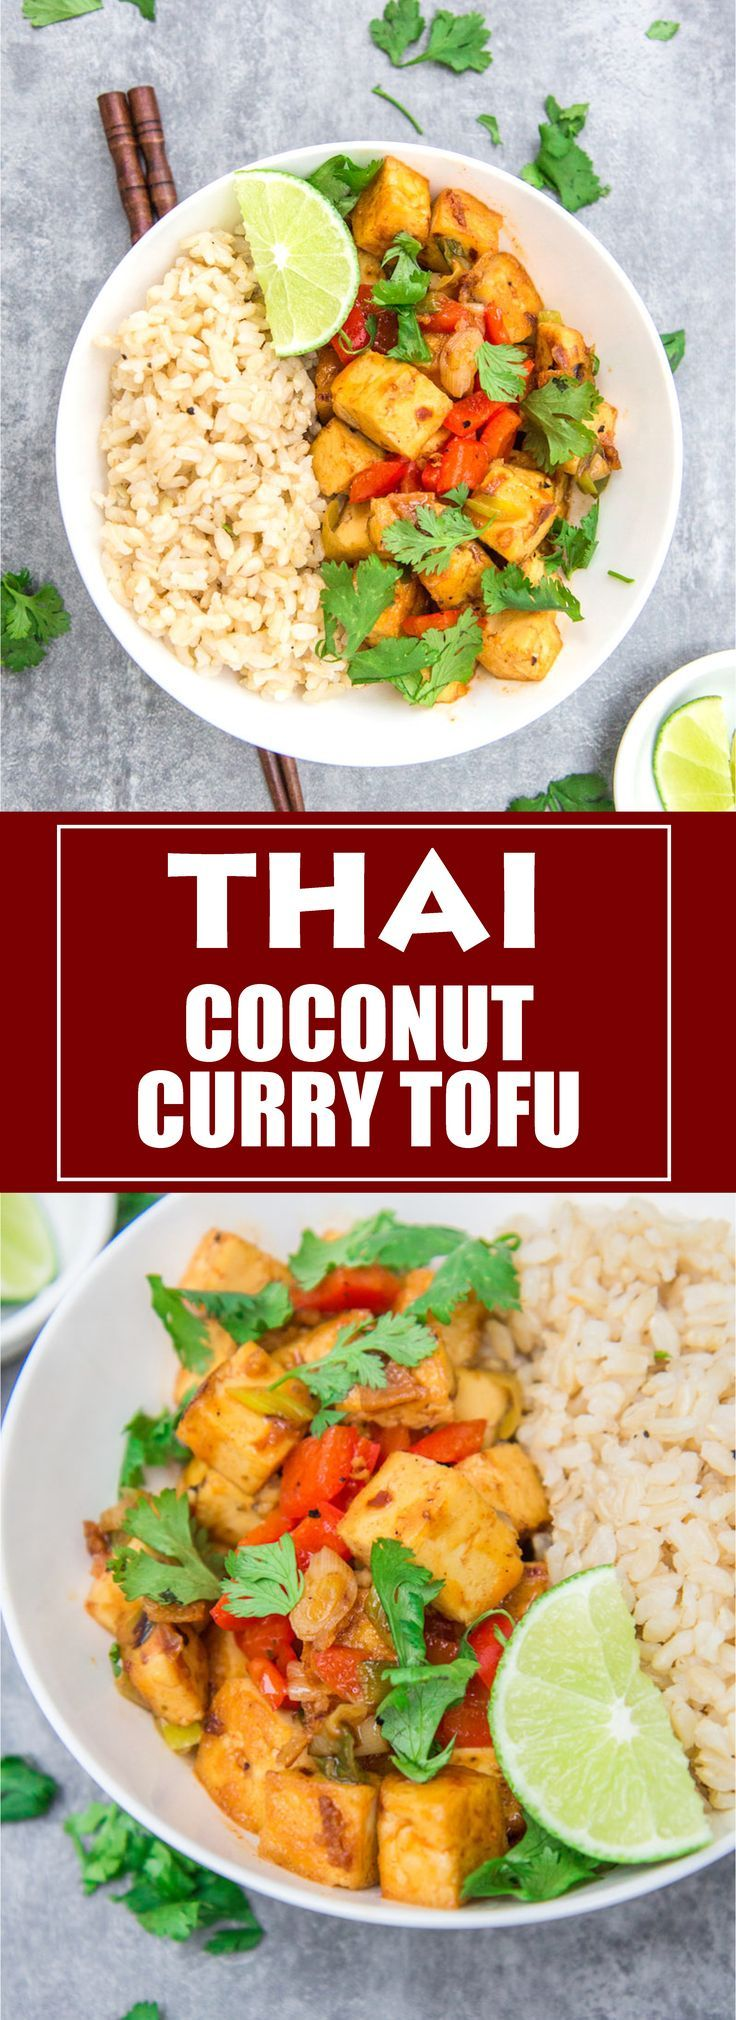 This Thai coconut curry tofu is bursting with flavours of Thailand! You'll want to eat tofu like this every day!